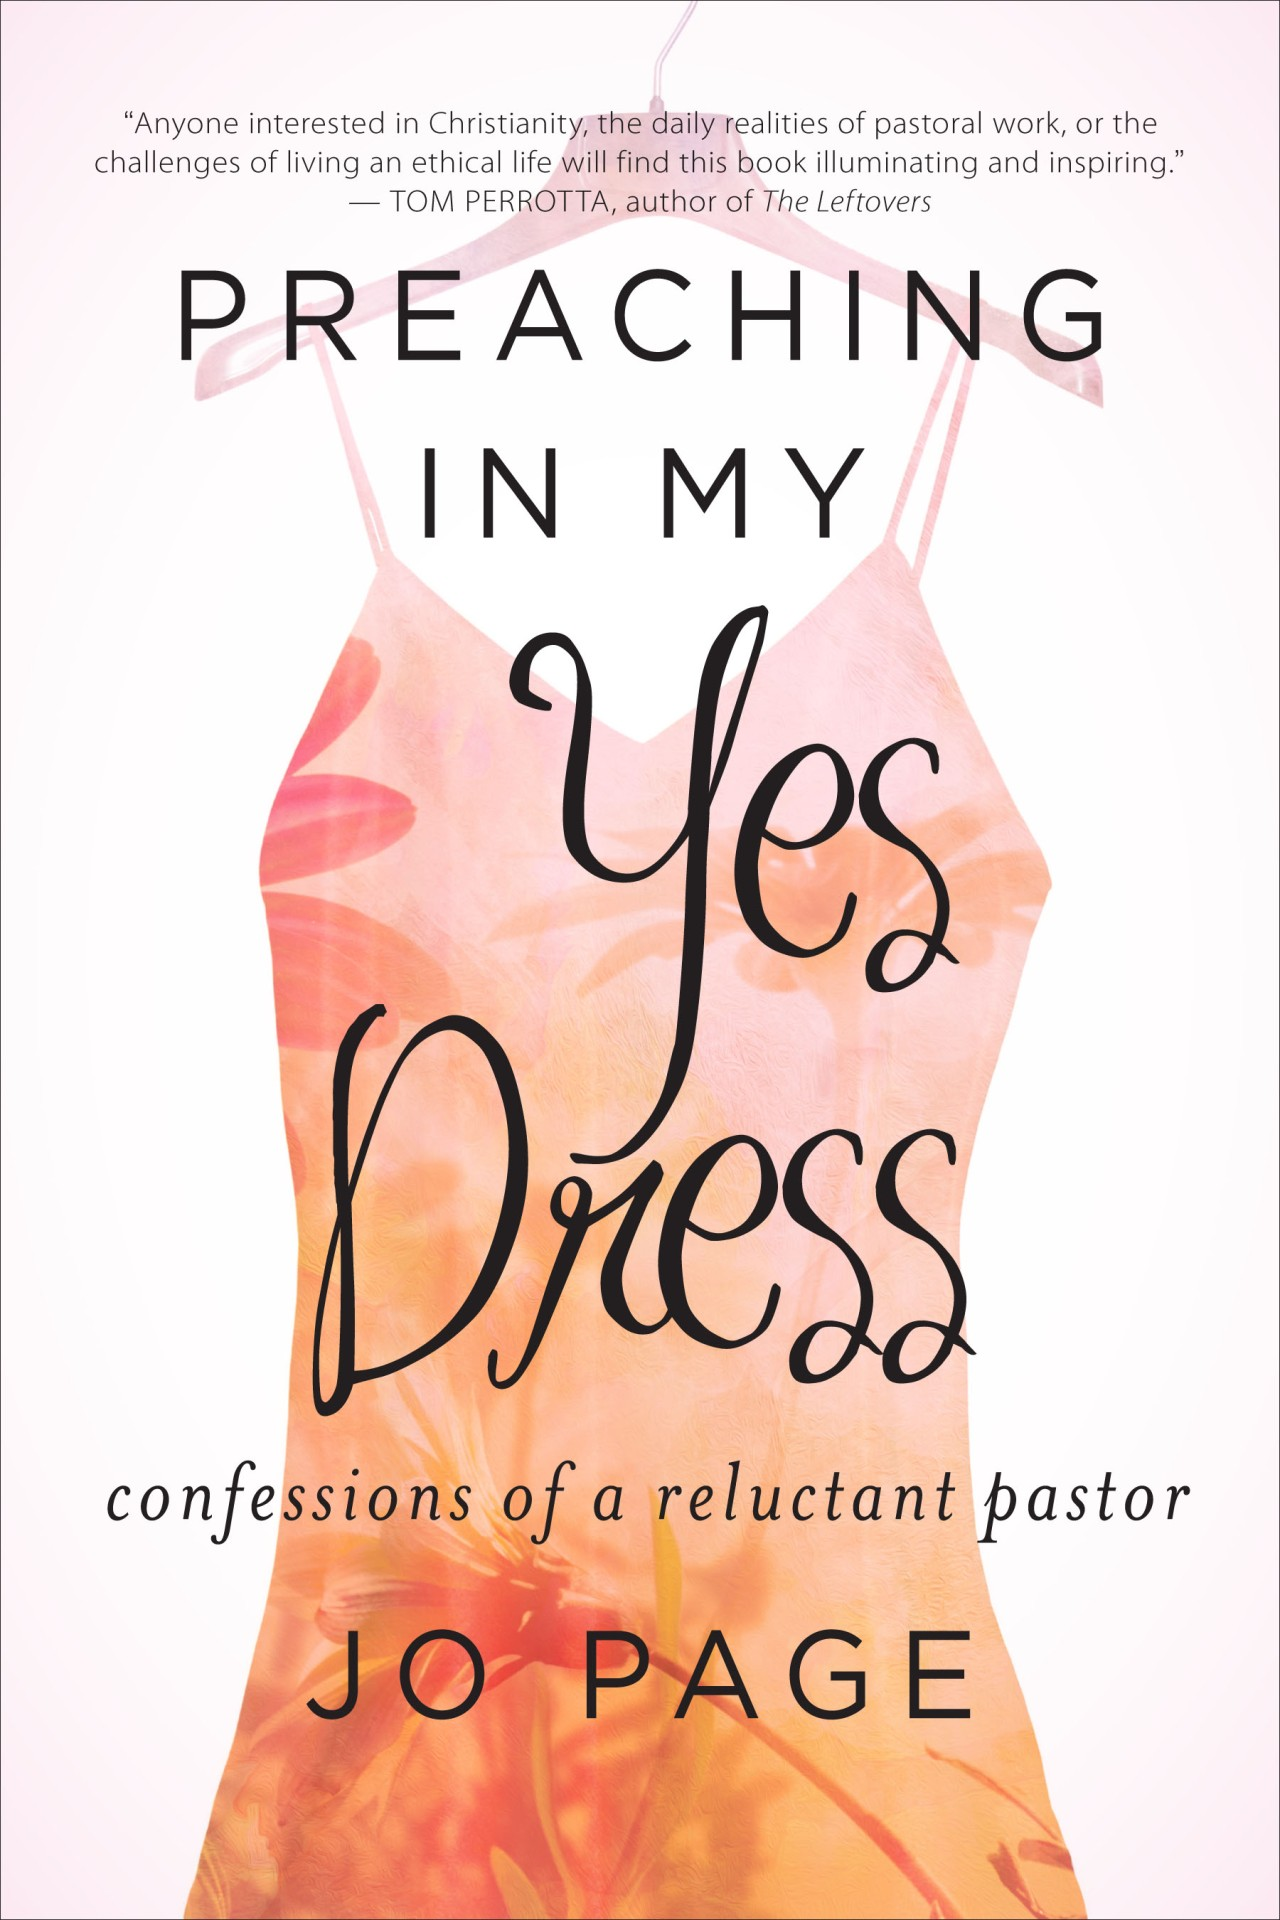 04152916 - Page Yes Dress Cover